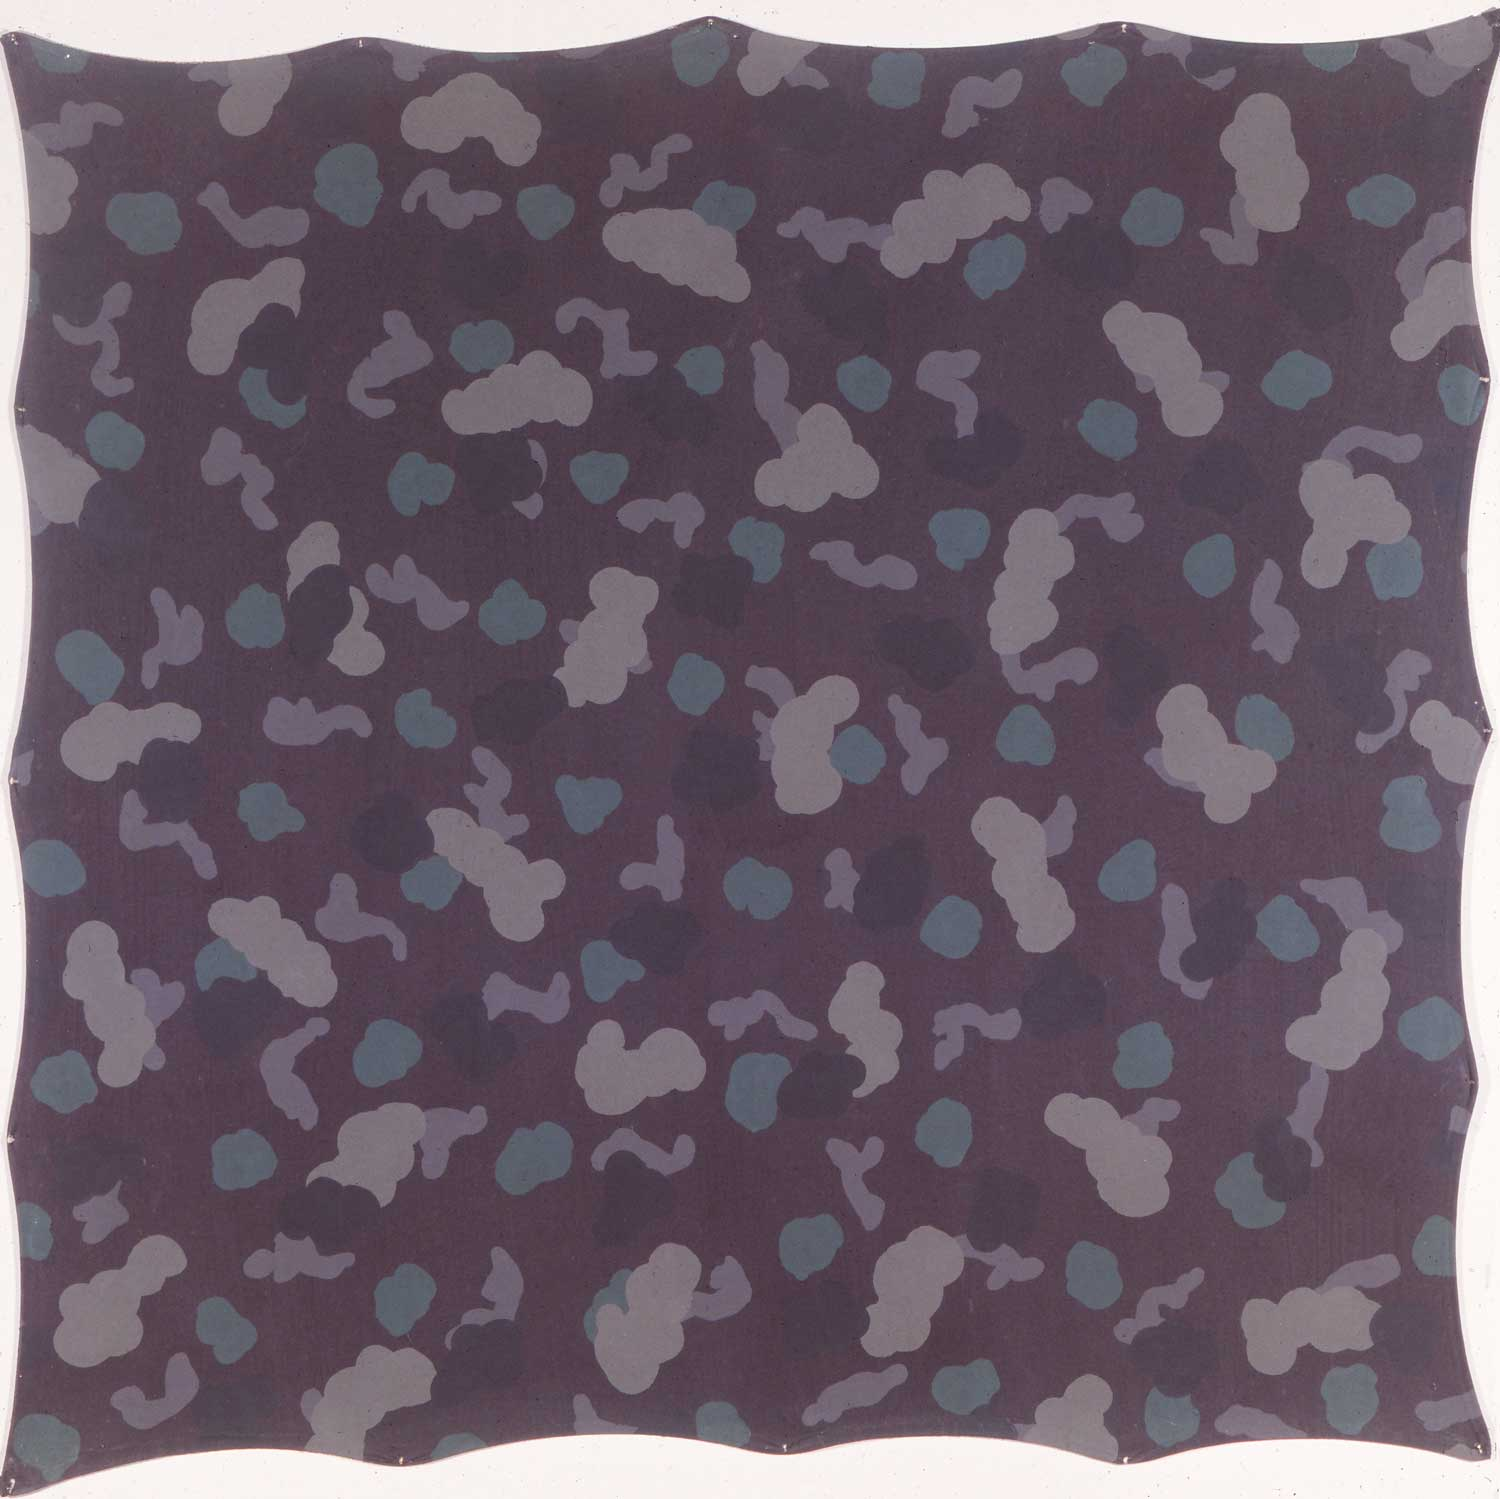 Tarnmuster / Camouflage pattern Nr. 03<br/>